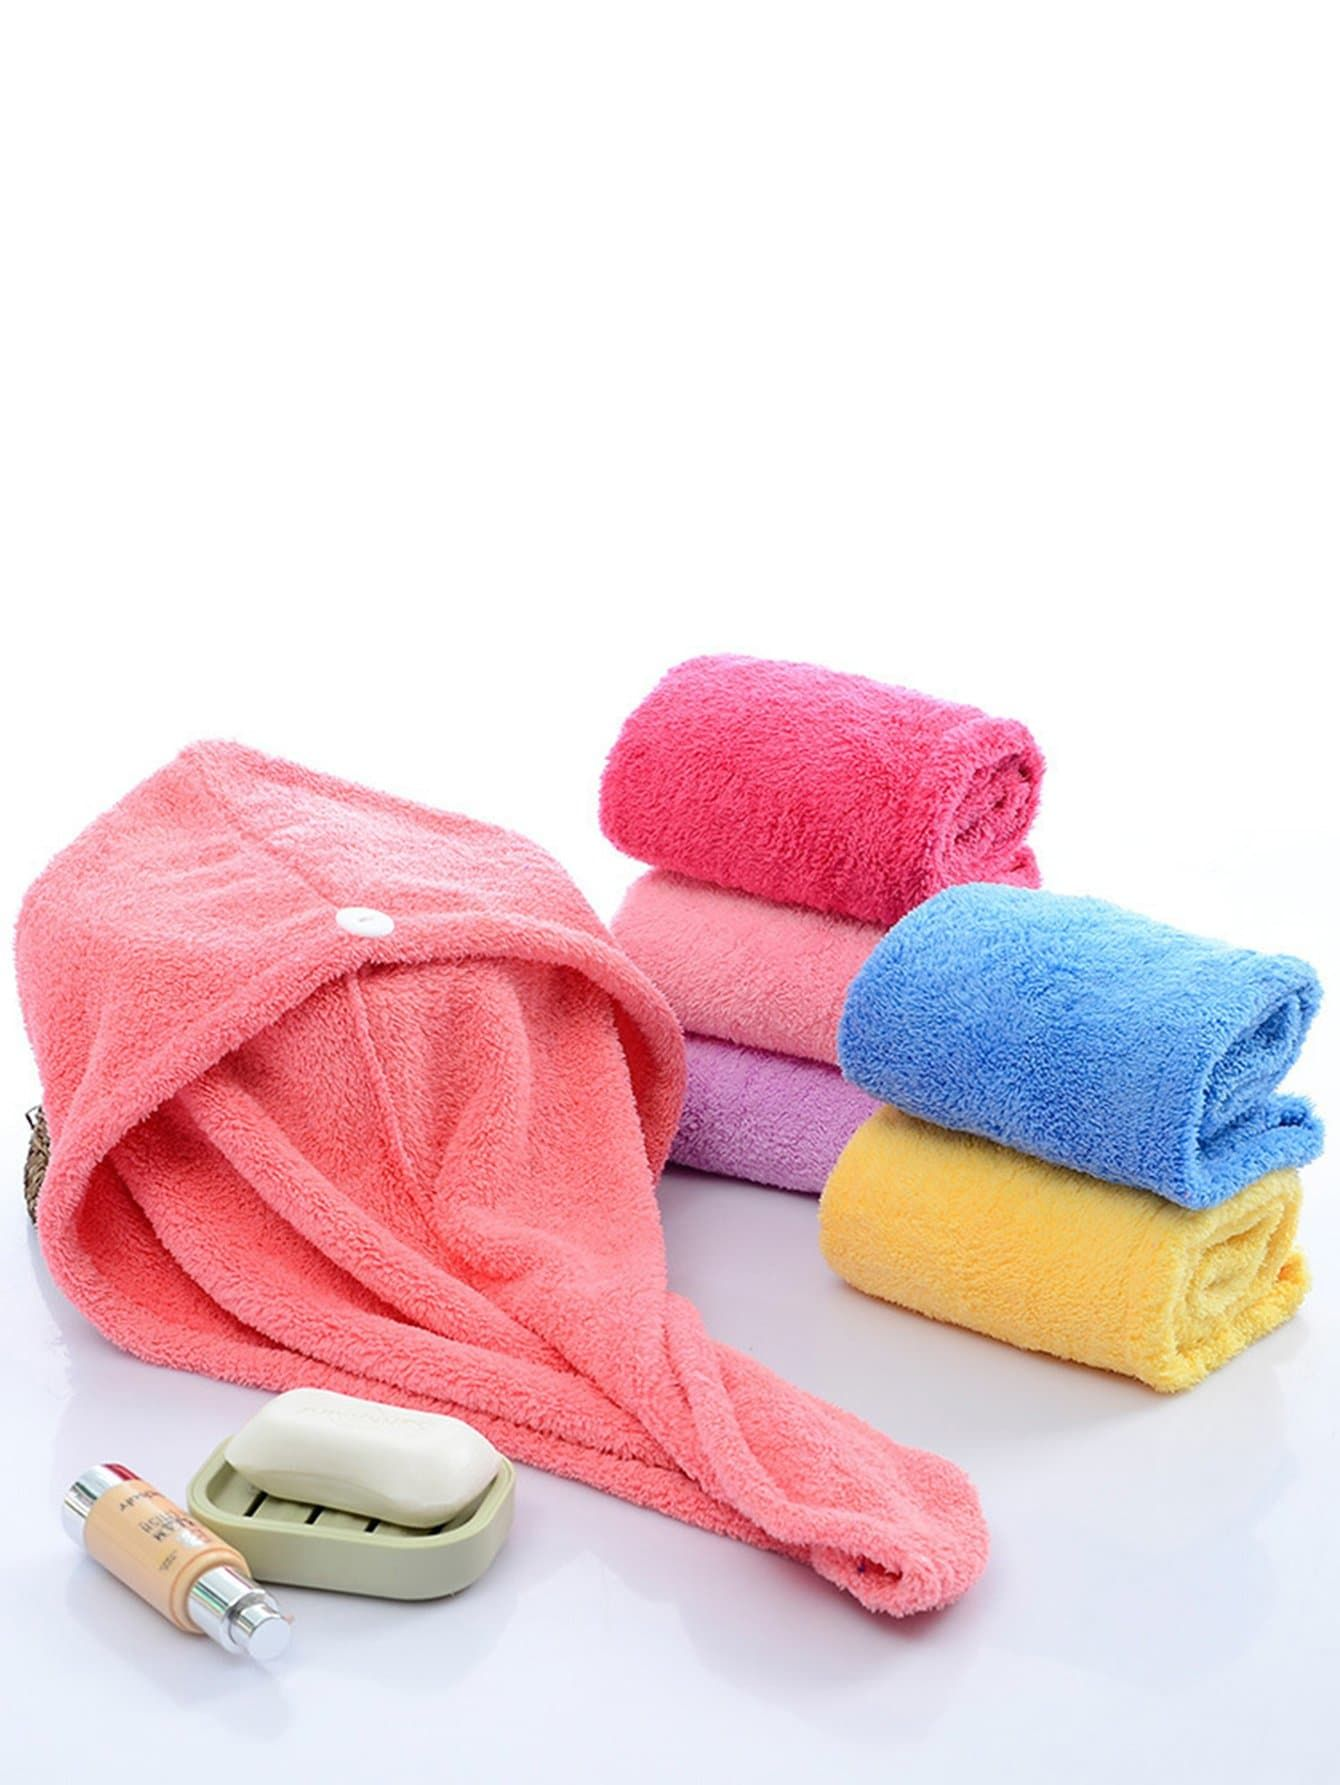 Bath Towels For Adults 100 Cotton 70x140cm Women Bathroom Super